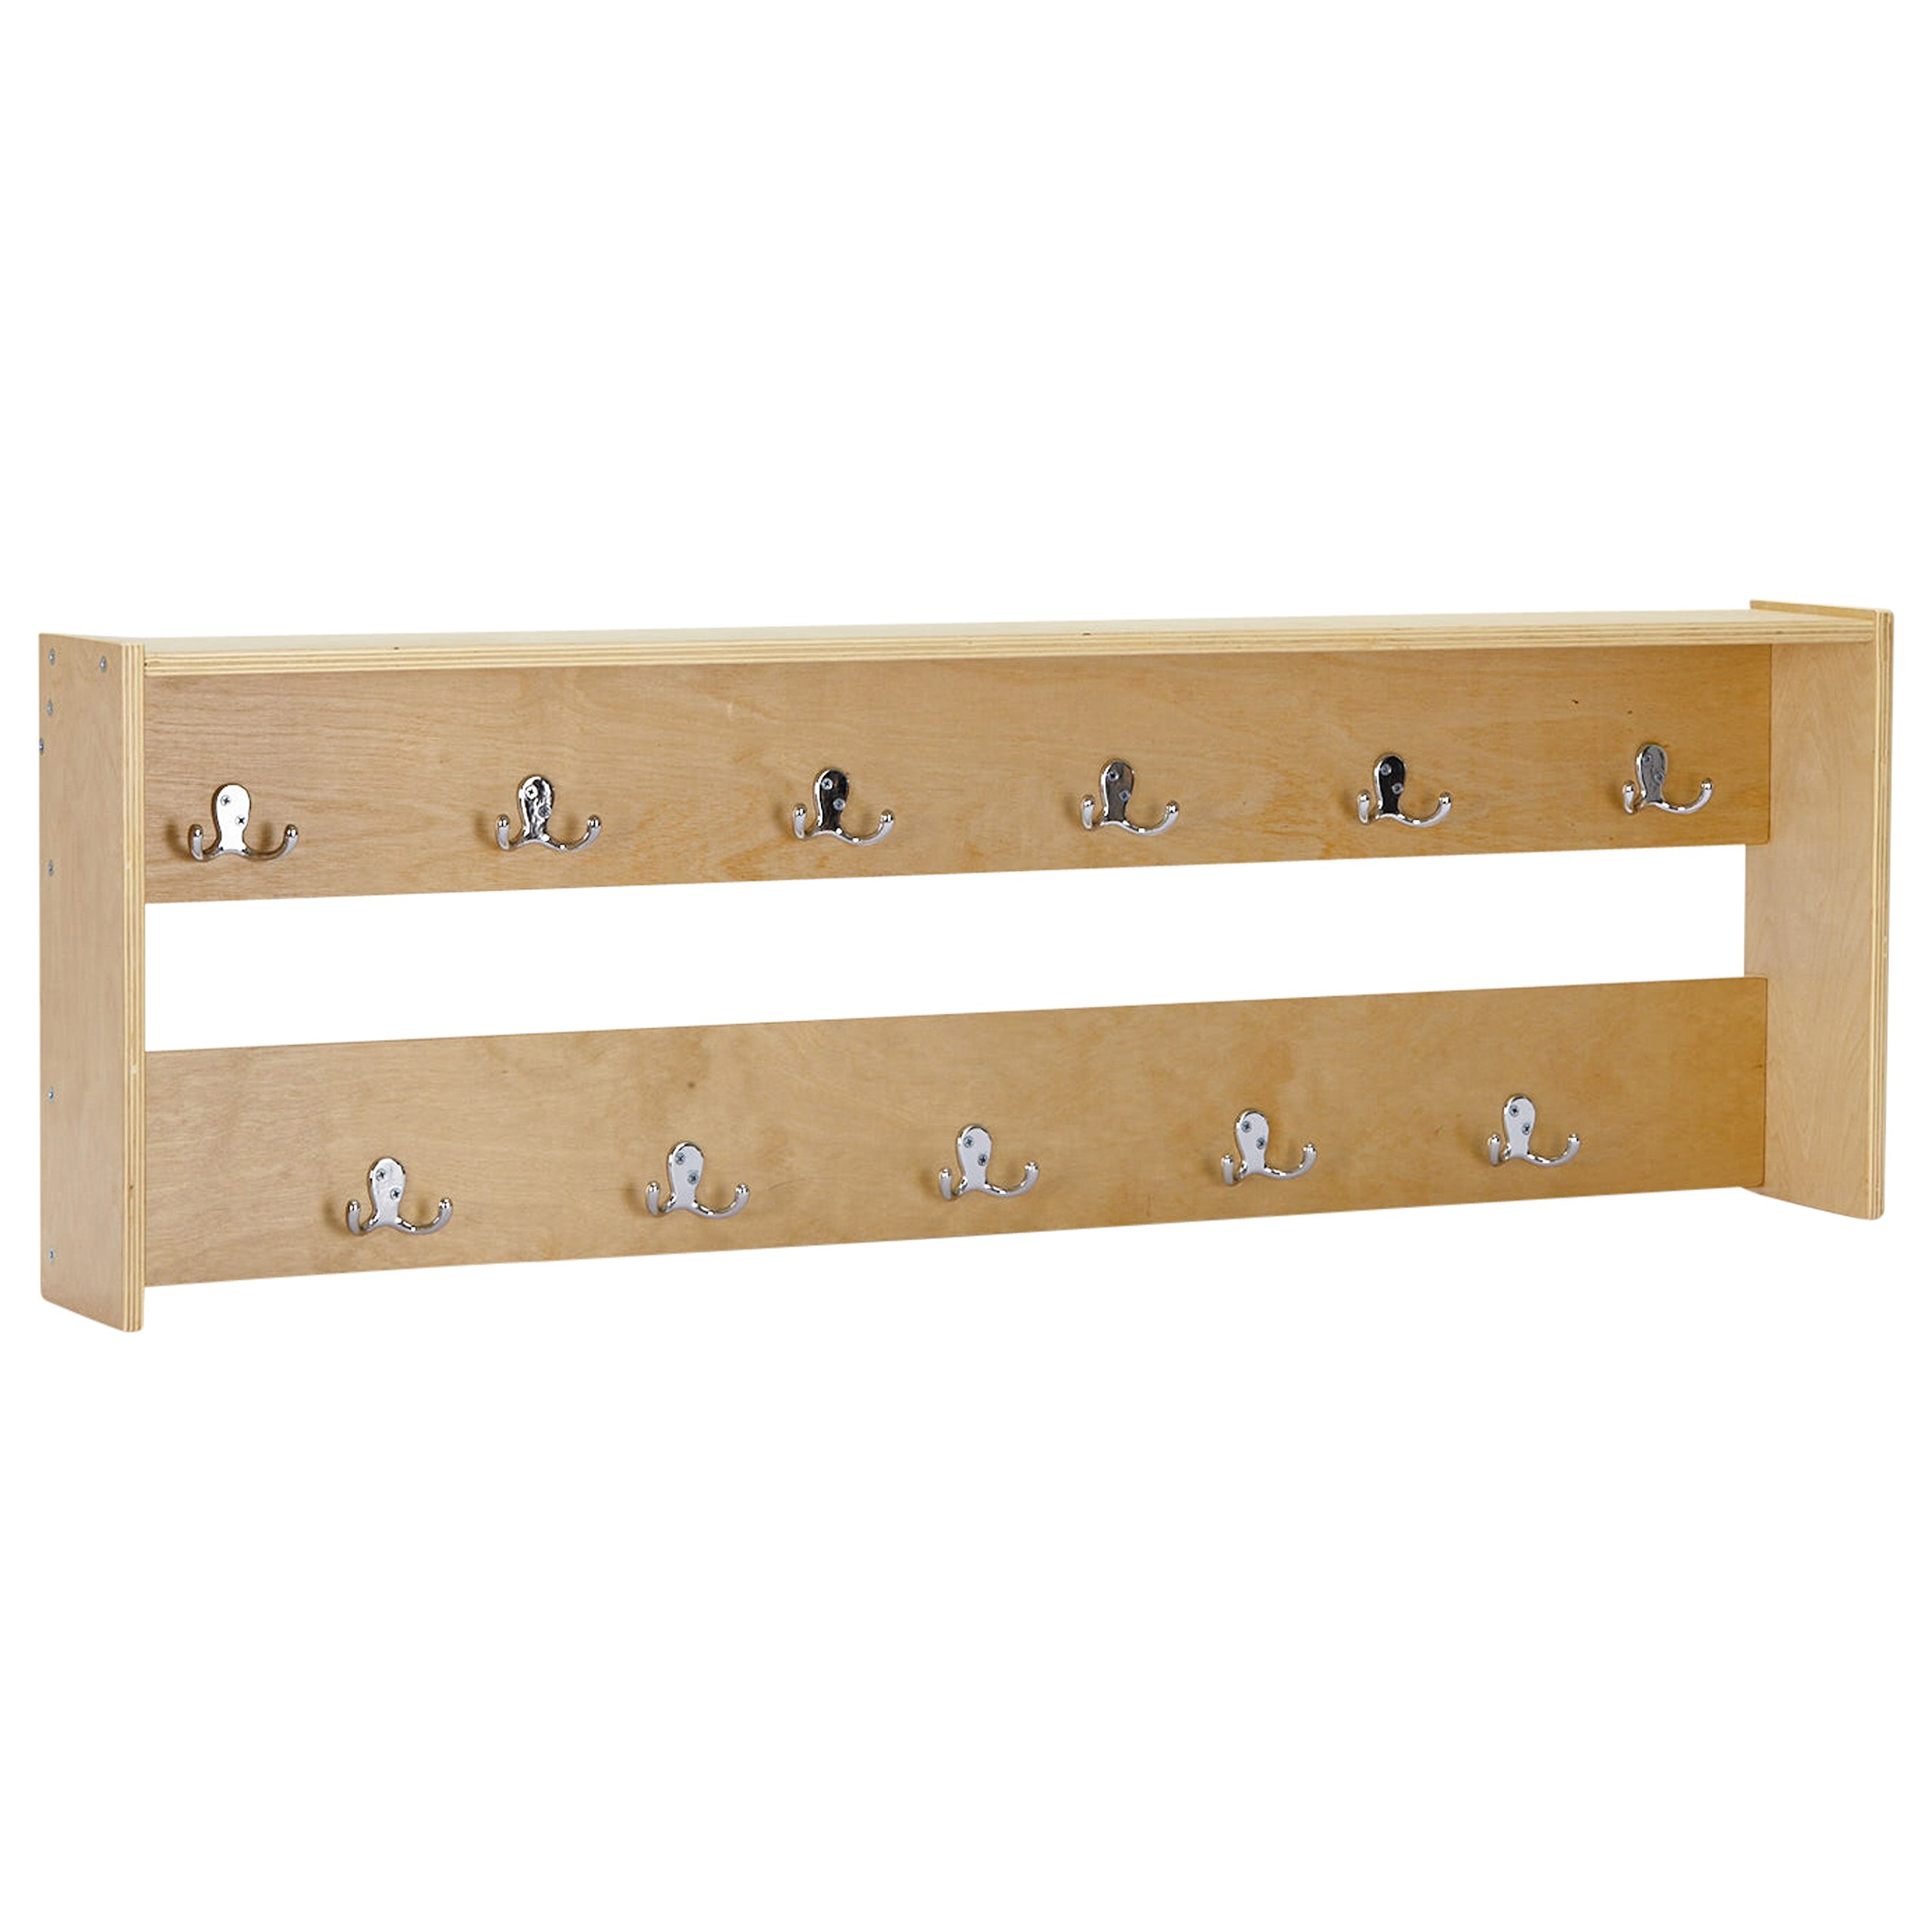 ECR4Kids Wood Wall Mounted Hook Cabinet - 11 Double Coat Hooks for School Backpacks or Jackets